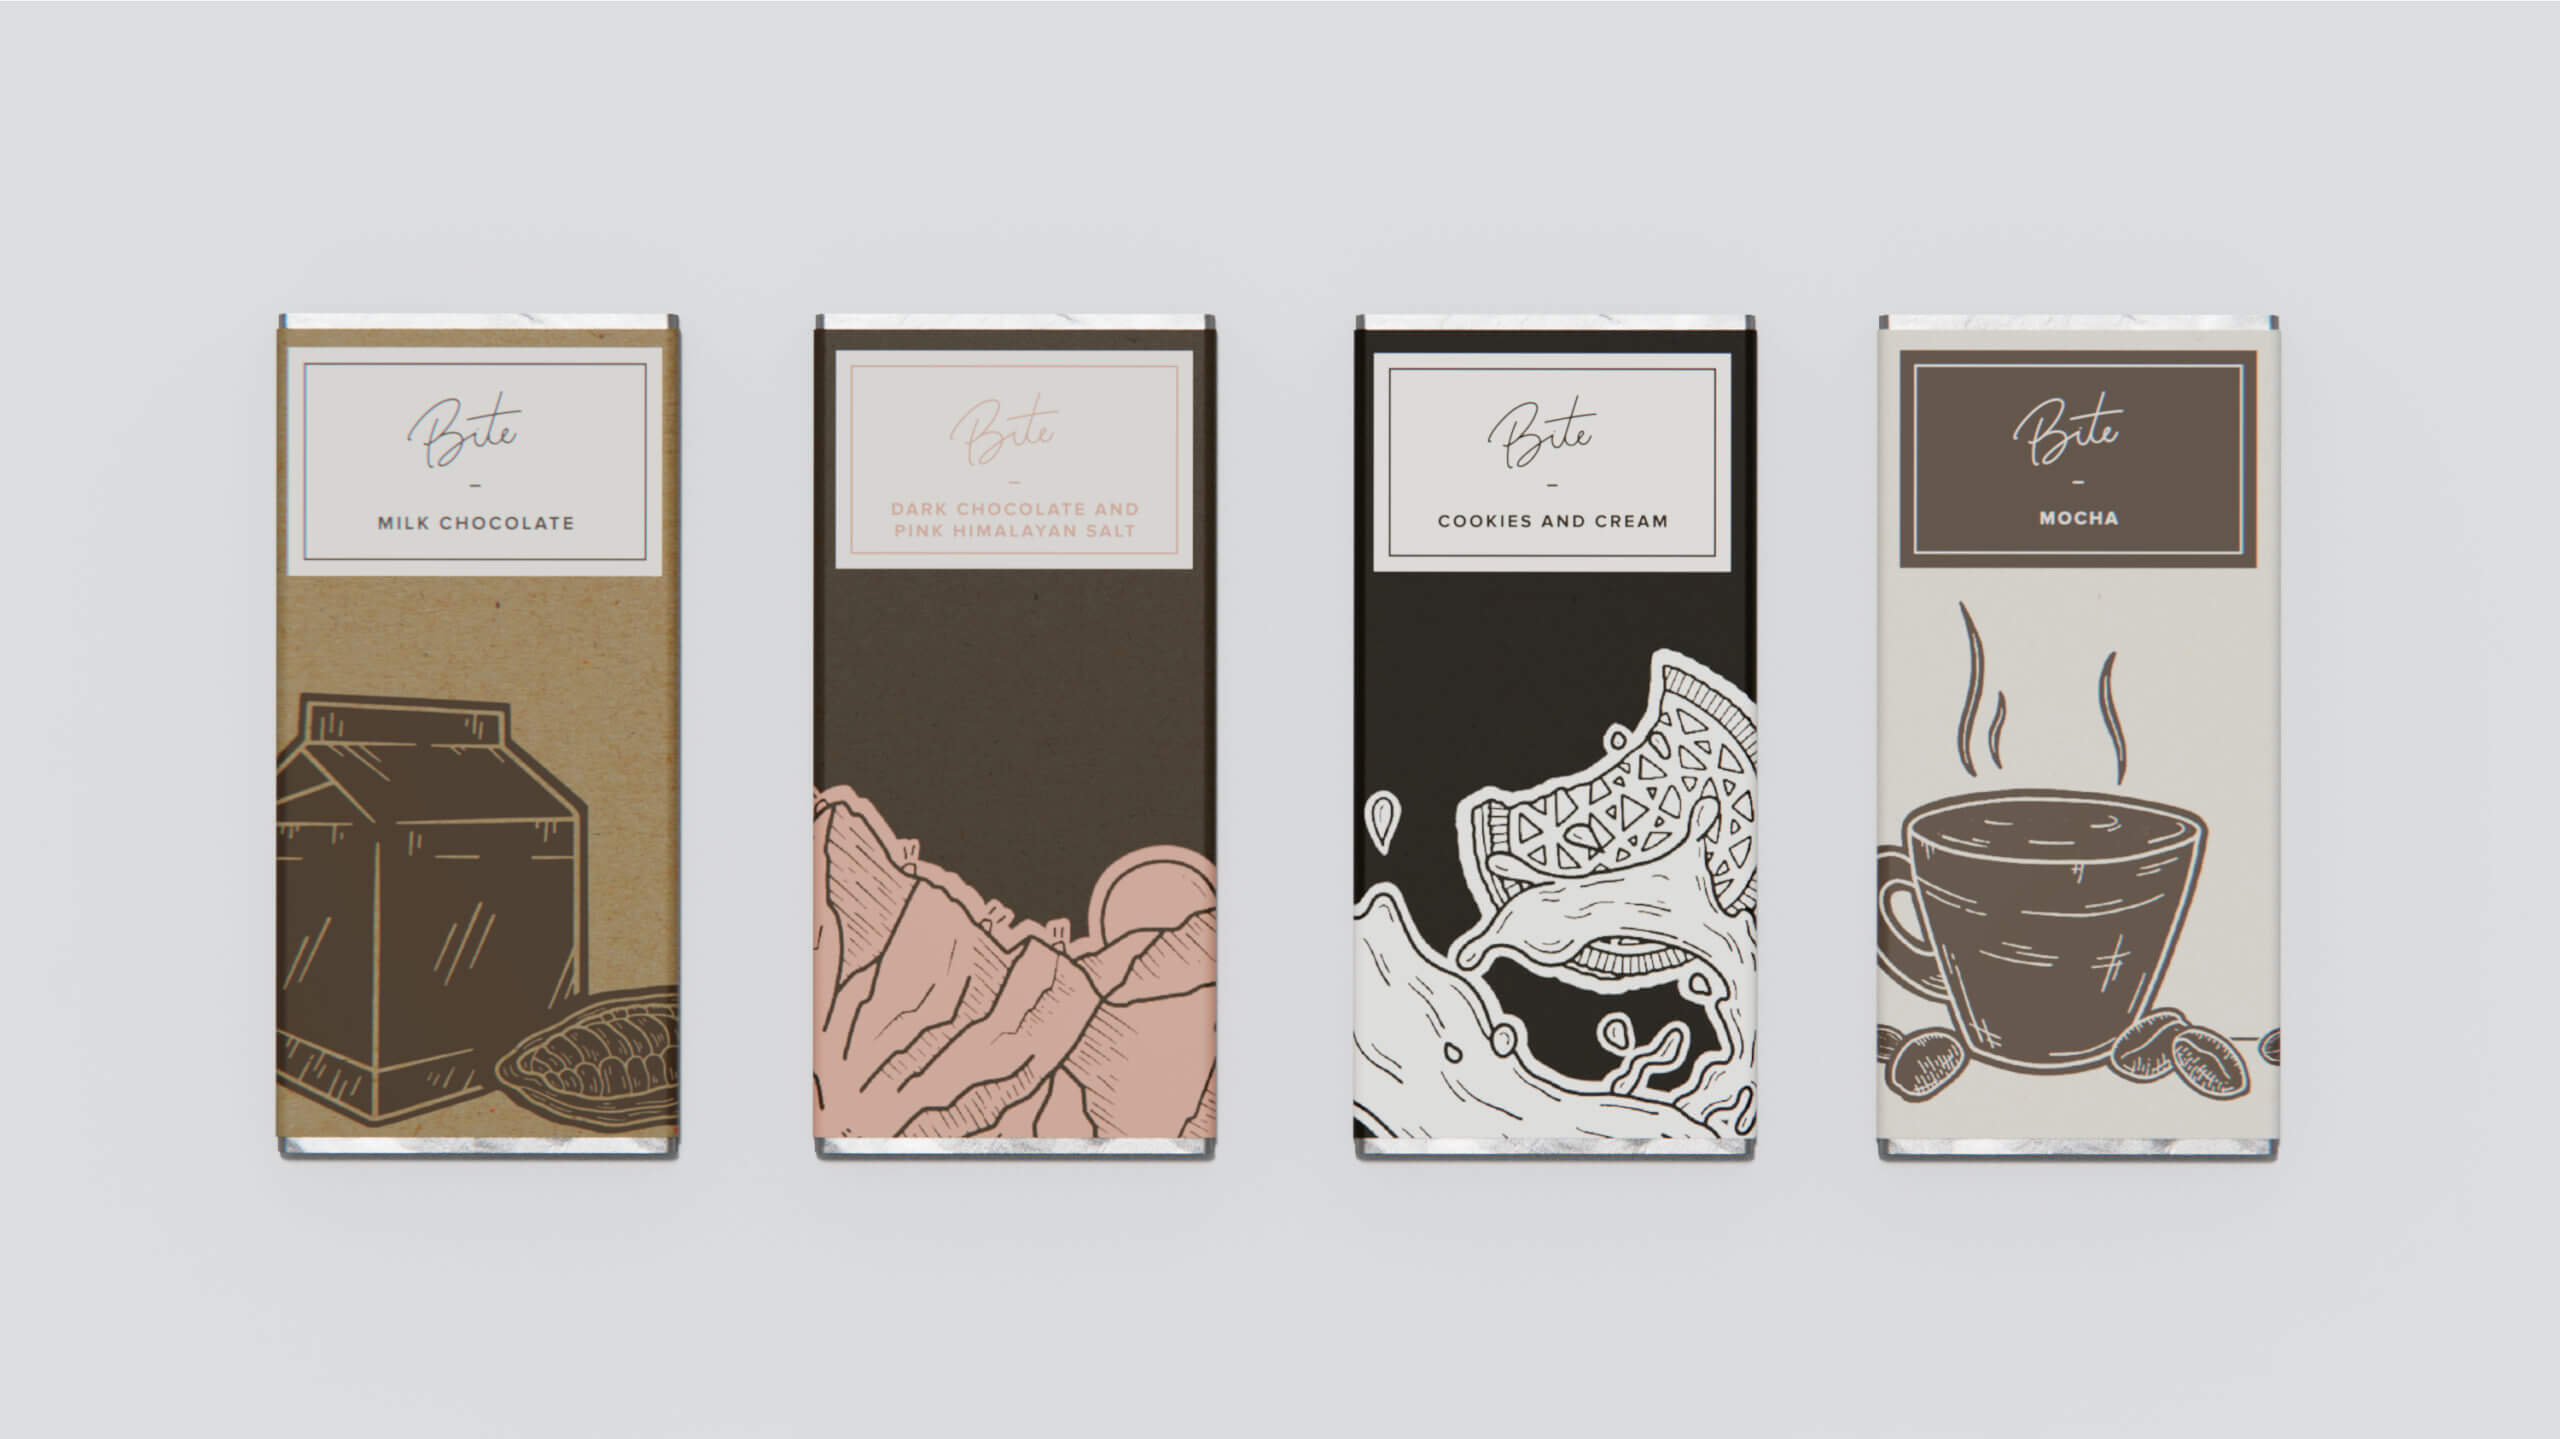 commcan commonwealth cannabis company cannabis bite chocolate packaging